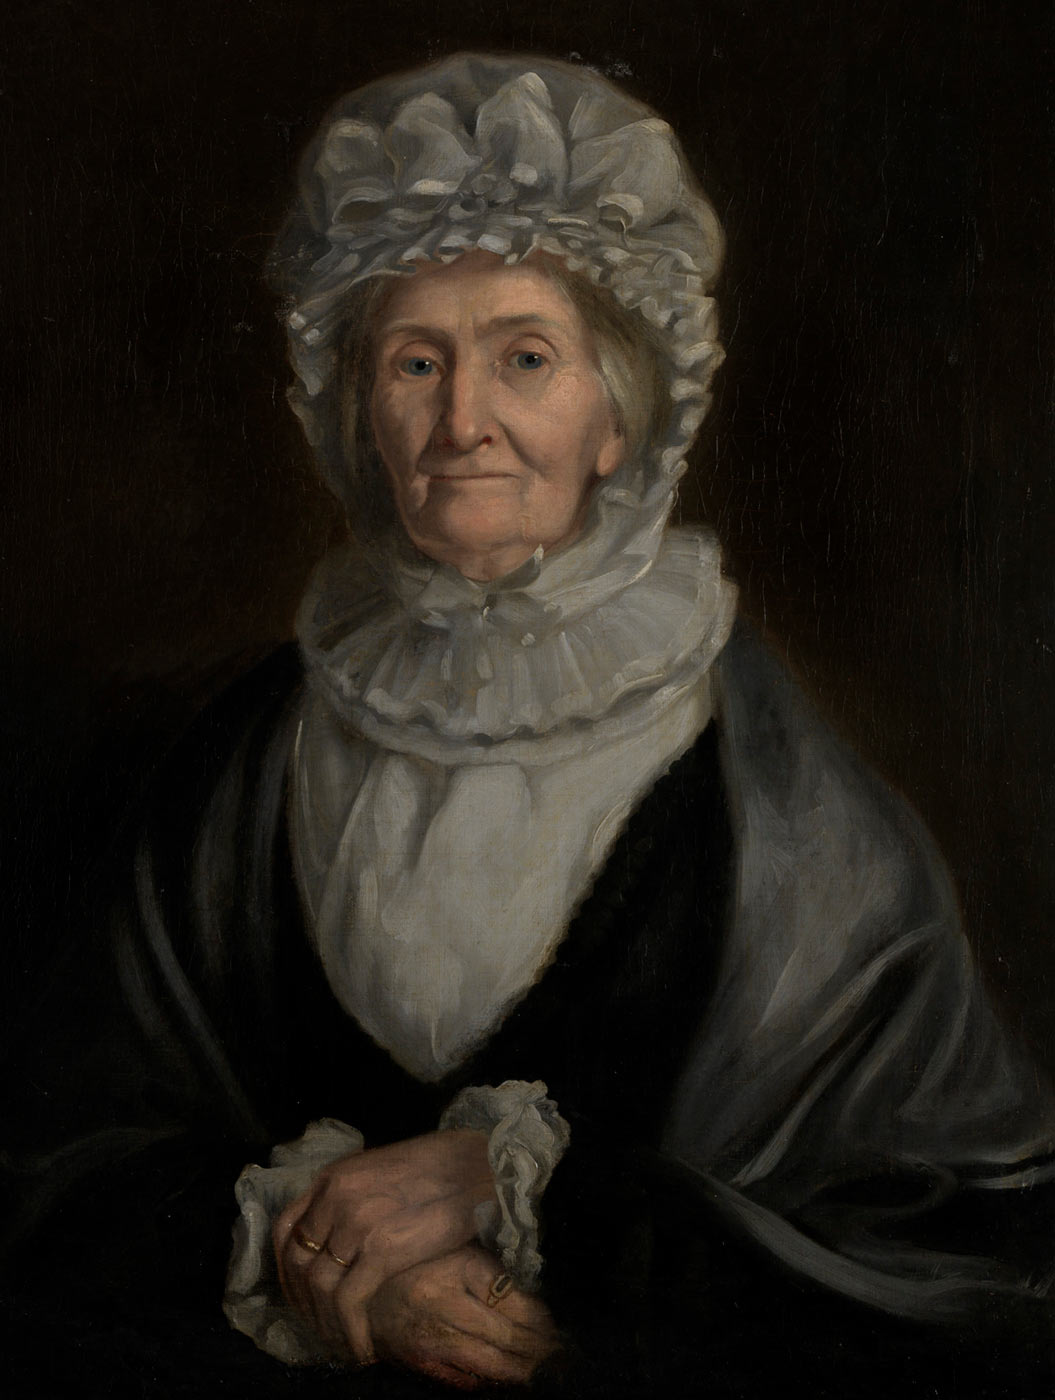 Painting of an elderly woman wearing 19th Century clothing including a frilled bonnet. - click to view larger image